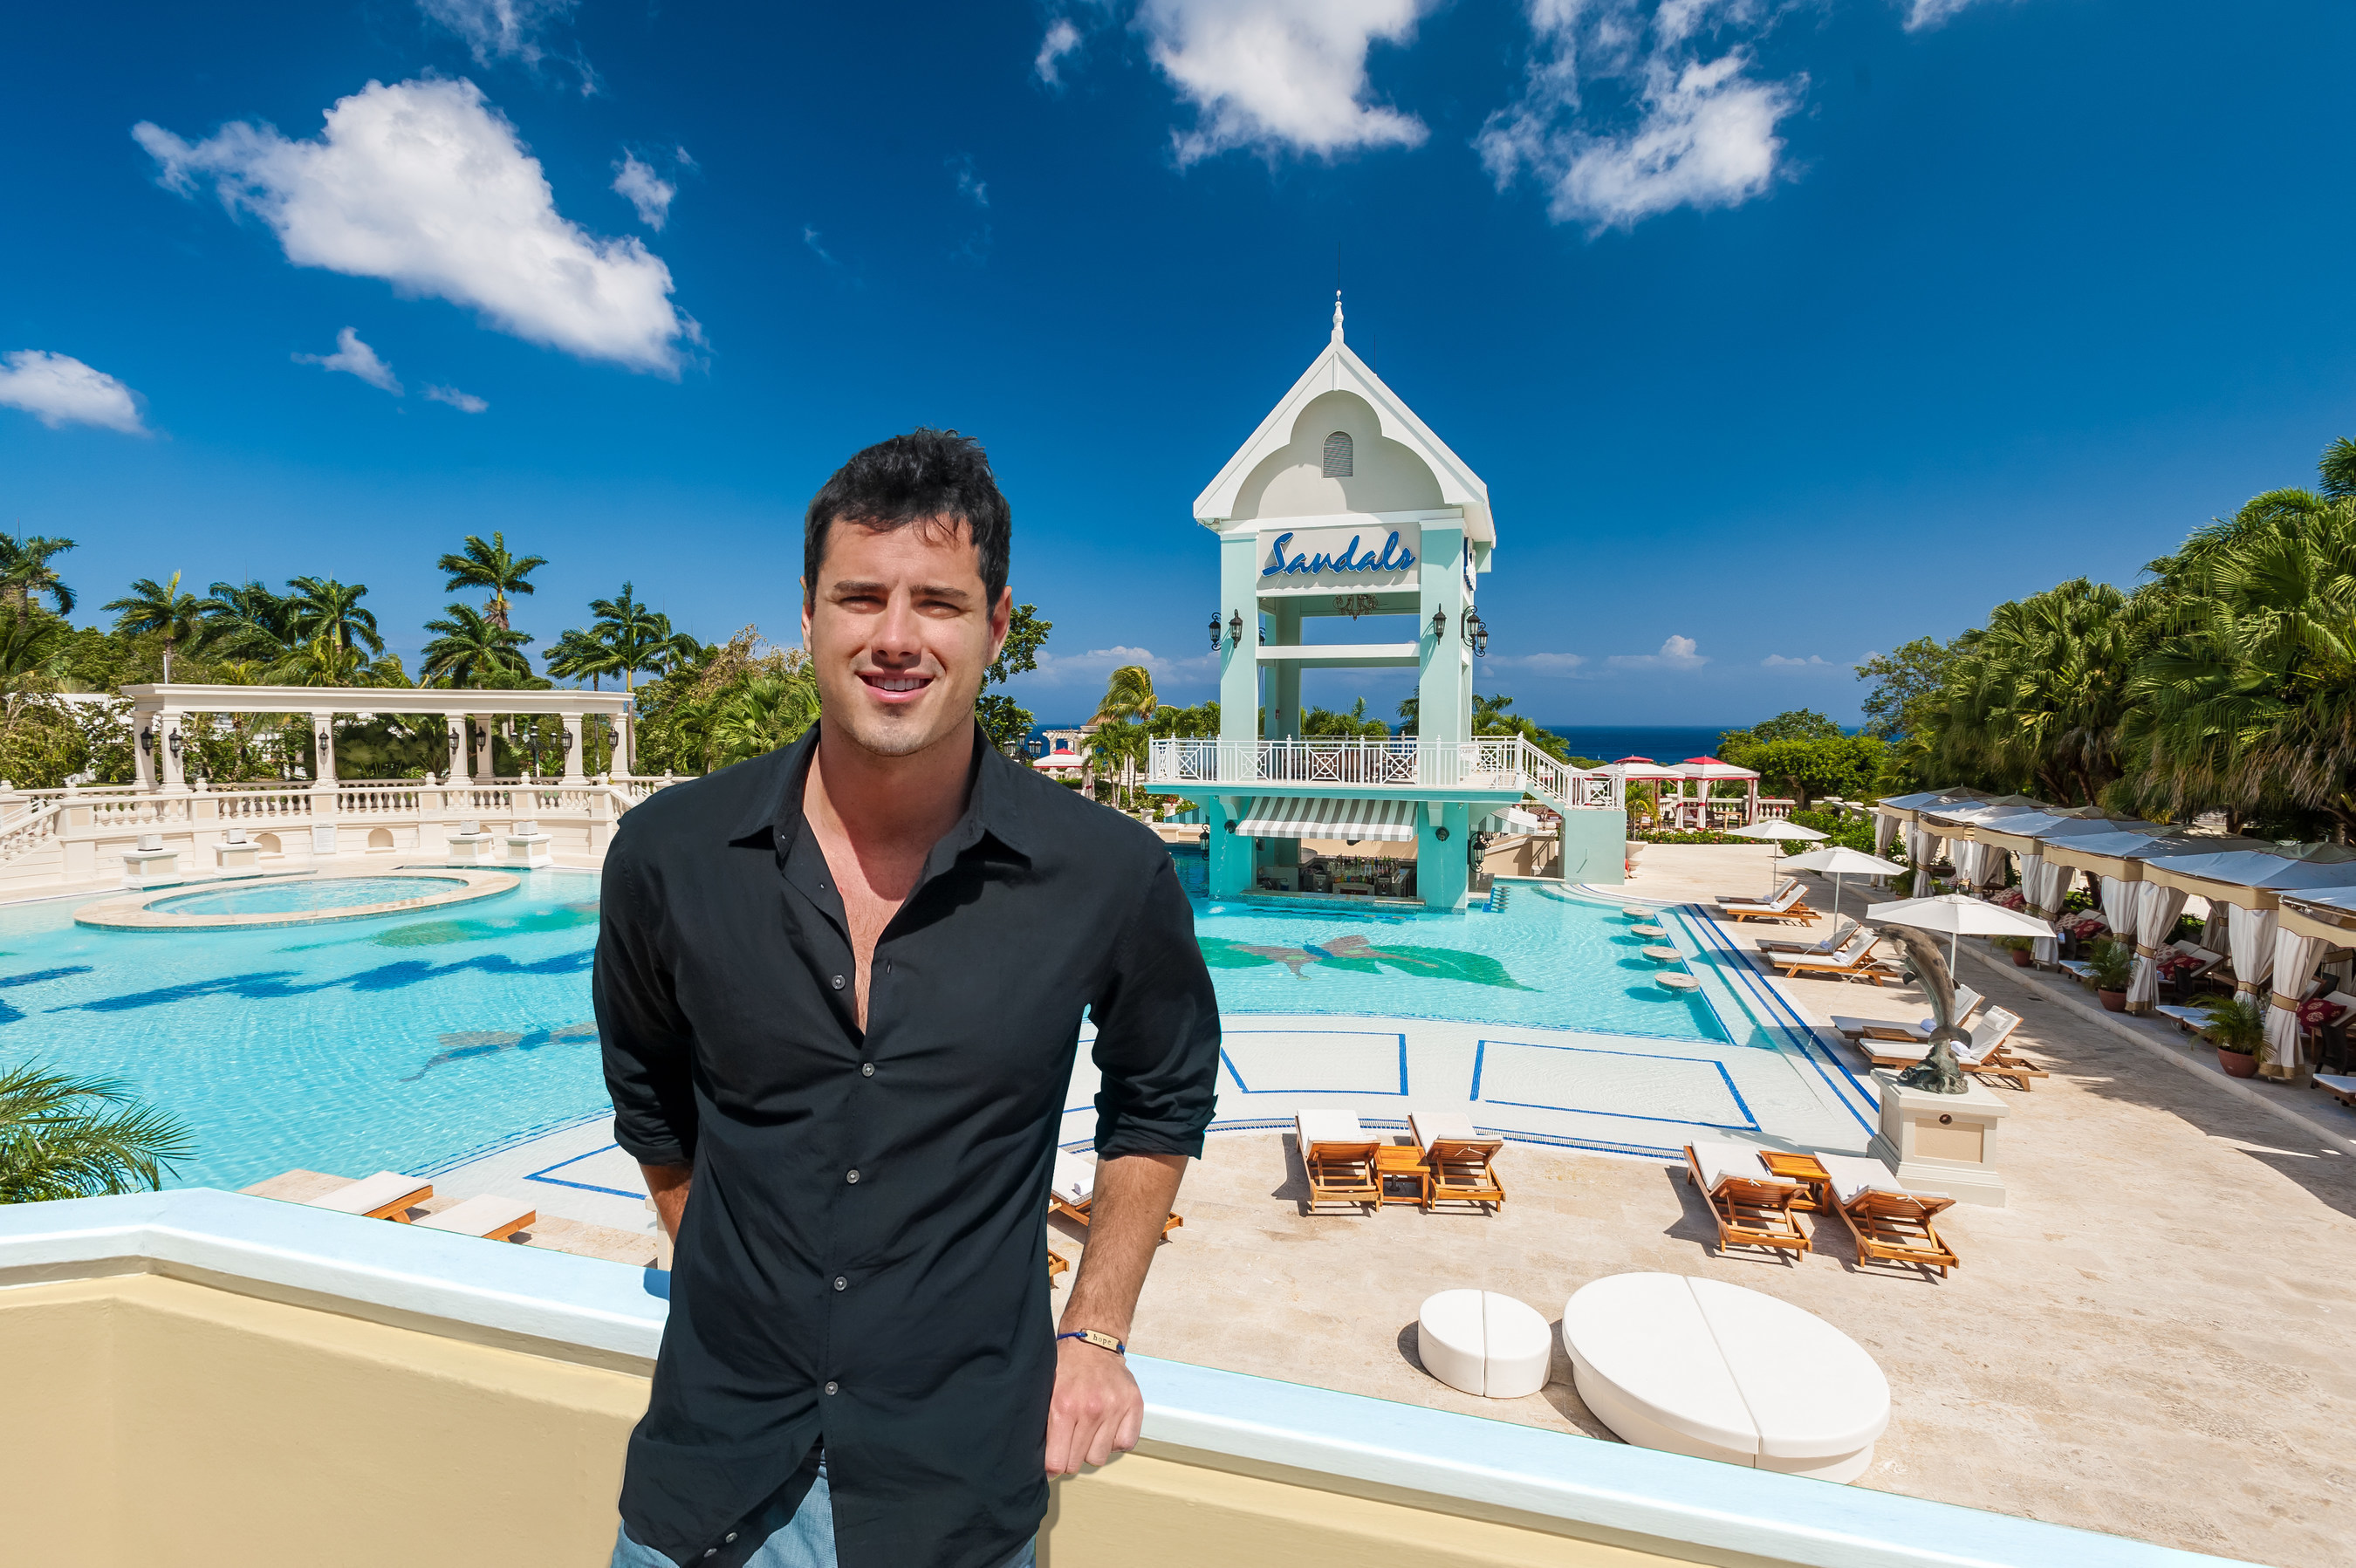 Season 20's final two episodes of ABC's The Bachelor will feature three unique resorts in Jamaica owned by Sandals Resorts International - Sandals Ochi Beach Resort, Sandals Royal Plantation and Rio Chico by Sandals Resorts - as the backdrops for the Bachelor, Ben Higgins, and his final three ladies as their journey comes to an end.